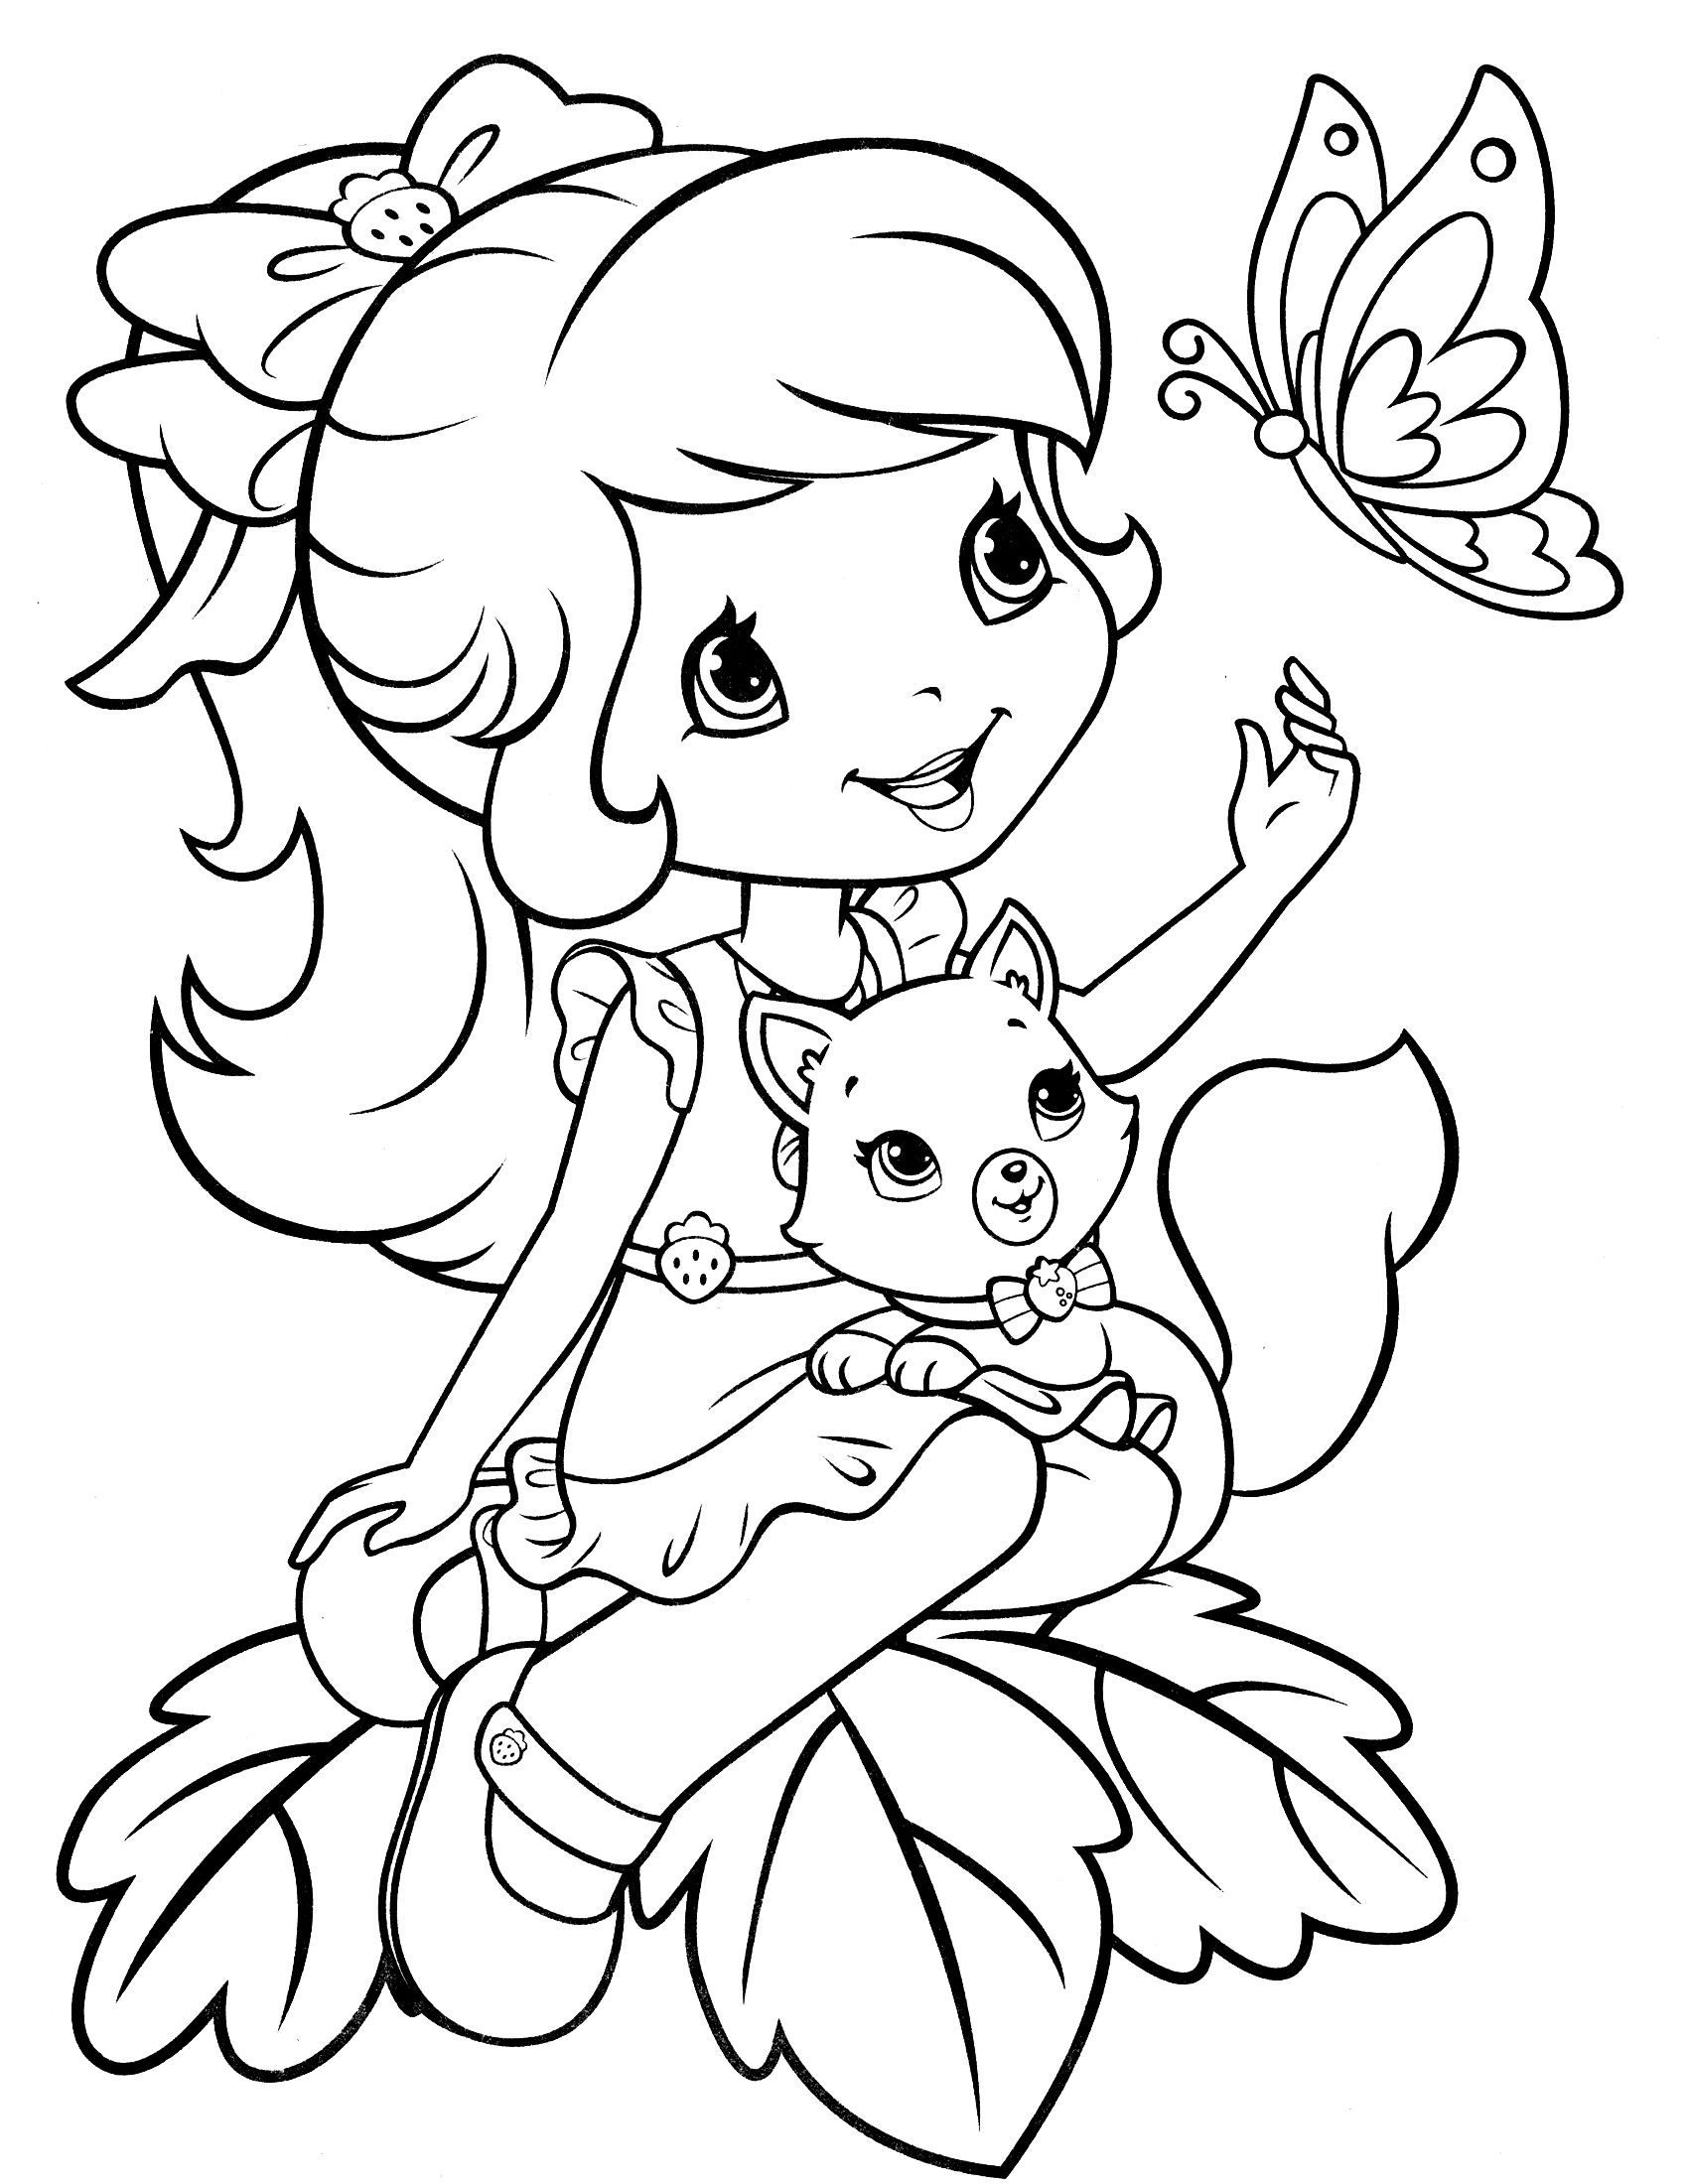 strawberry shortcake drawing pages strawberry shortcake 4 coloringcolorcom strawberry shortcake drawing pages